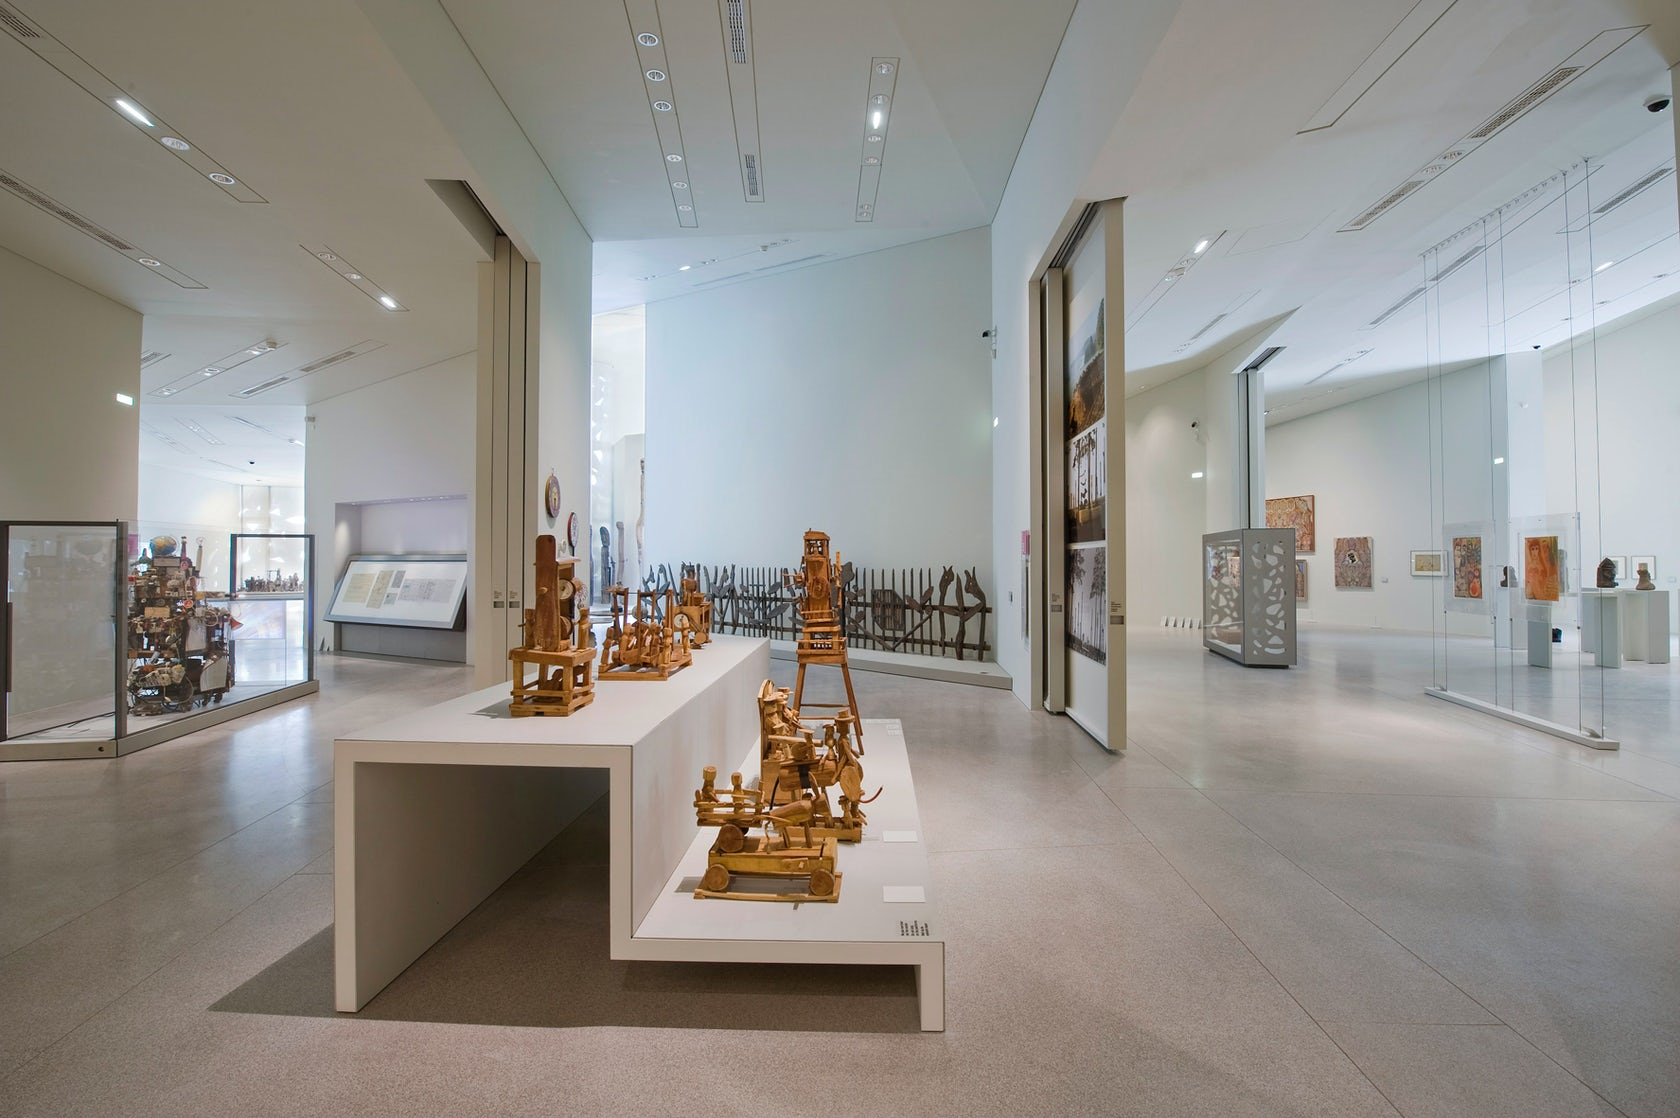 case study marshant museum of art and history The rijksmuseum is one of the top 10 art and history museums in the world customer case study solution the museum deployed a new.